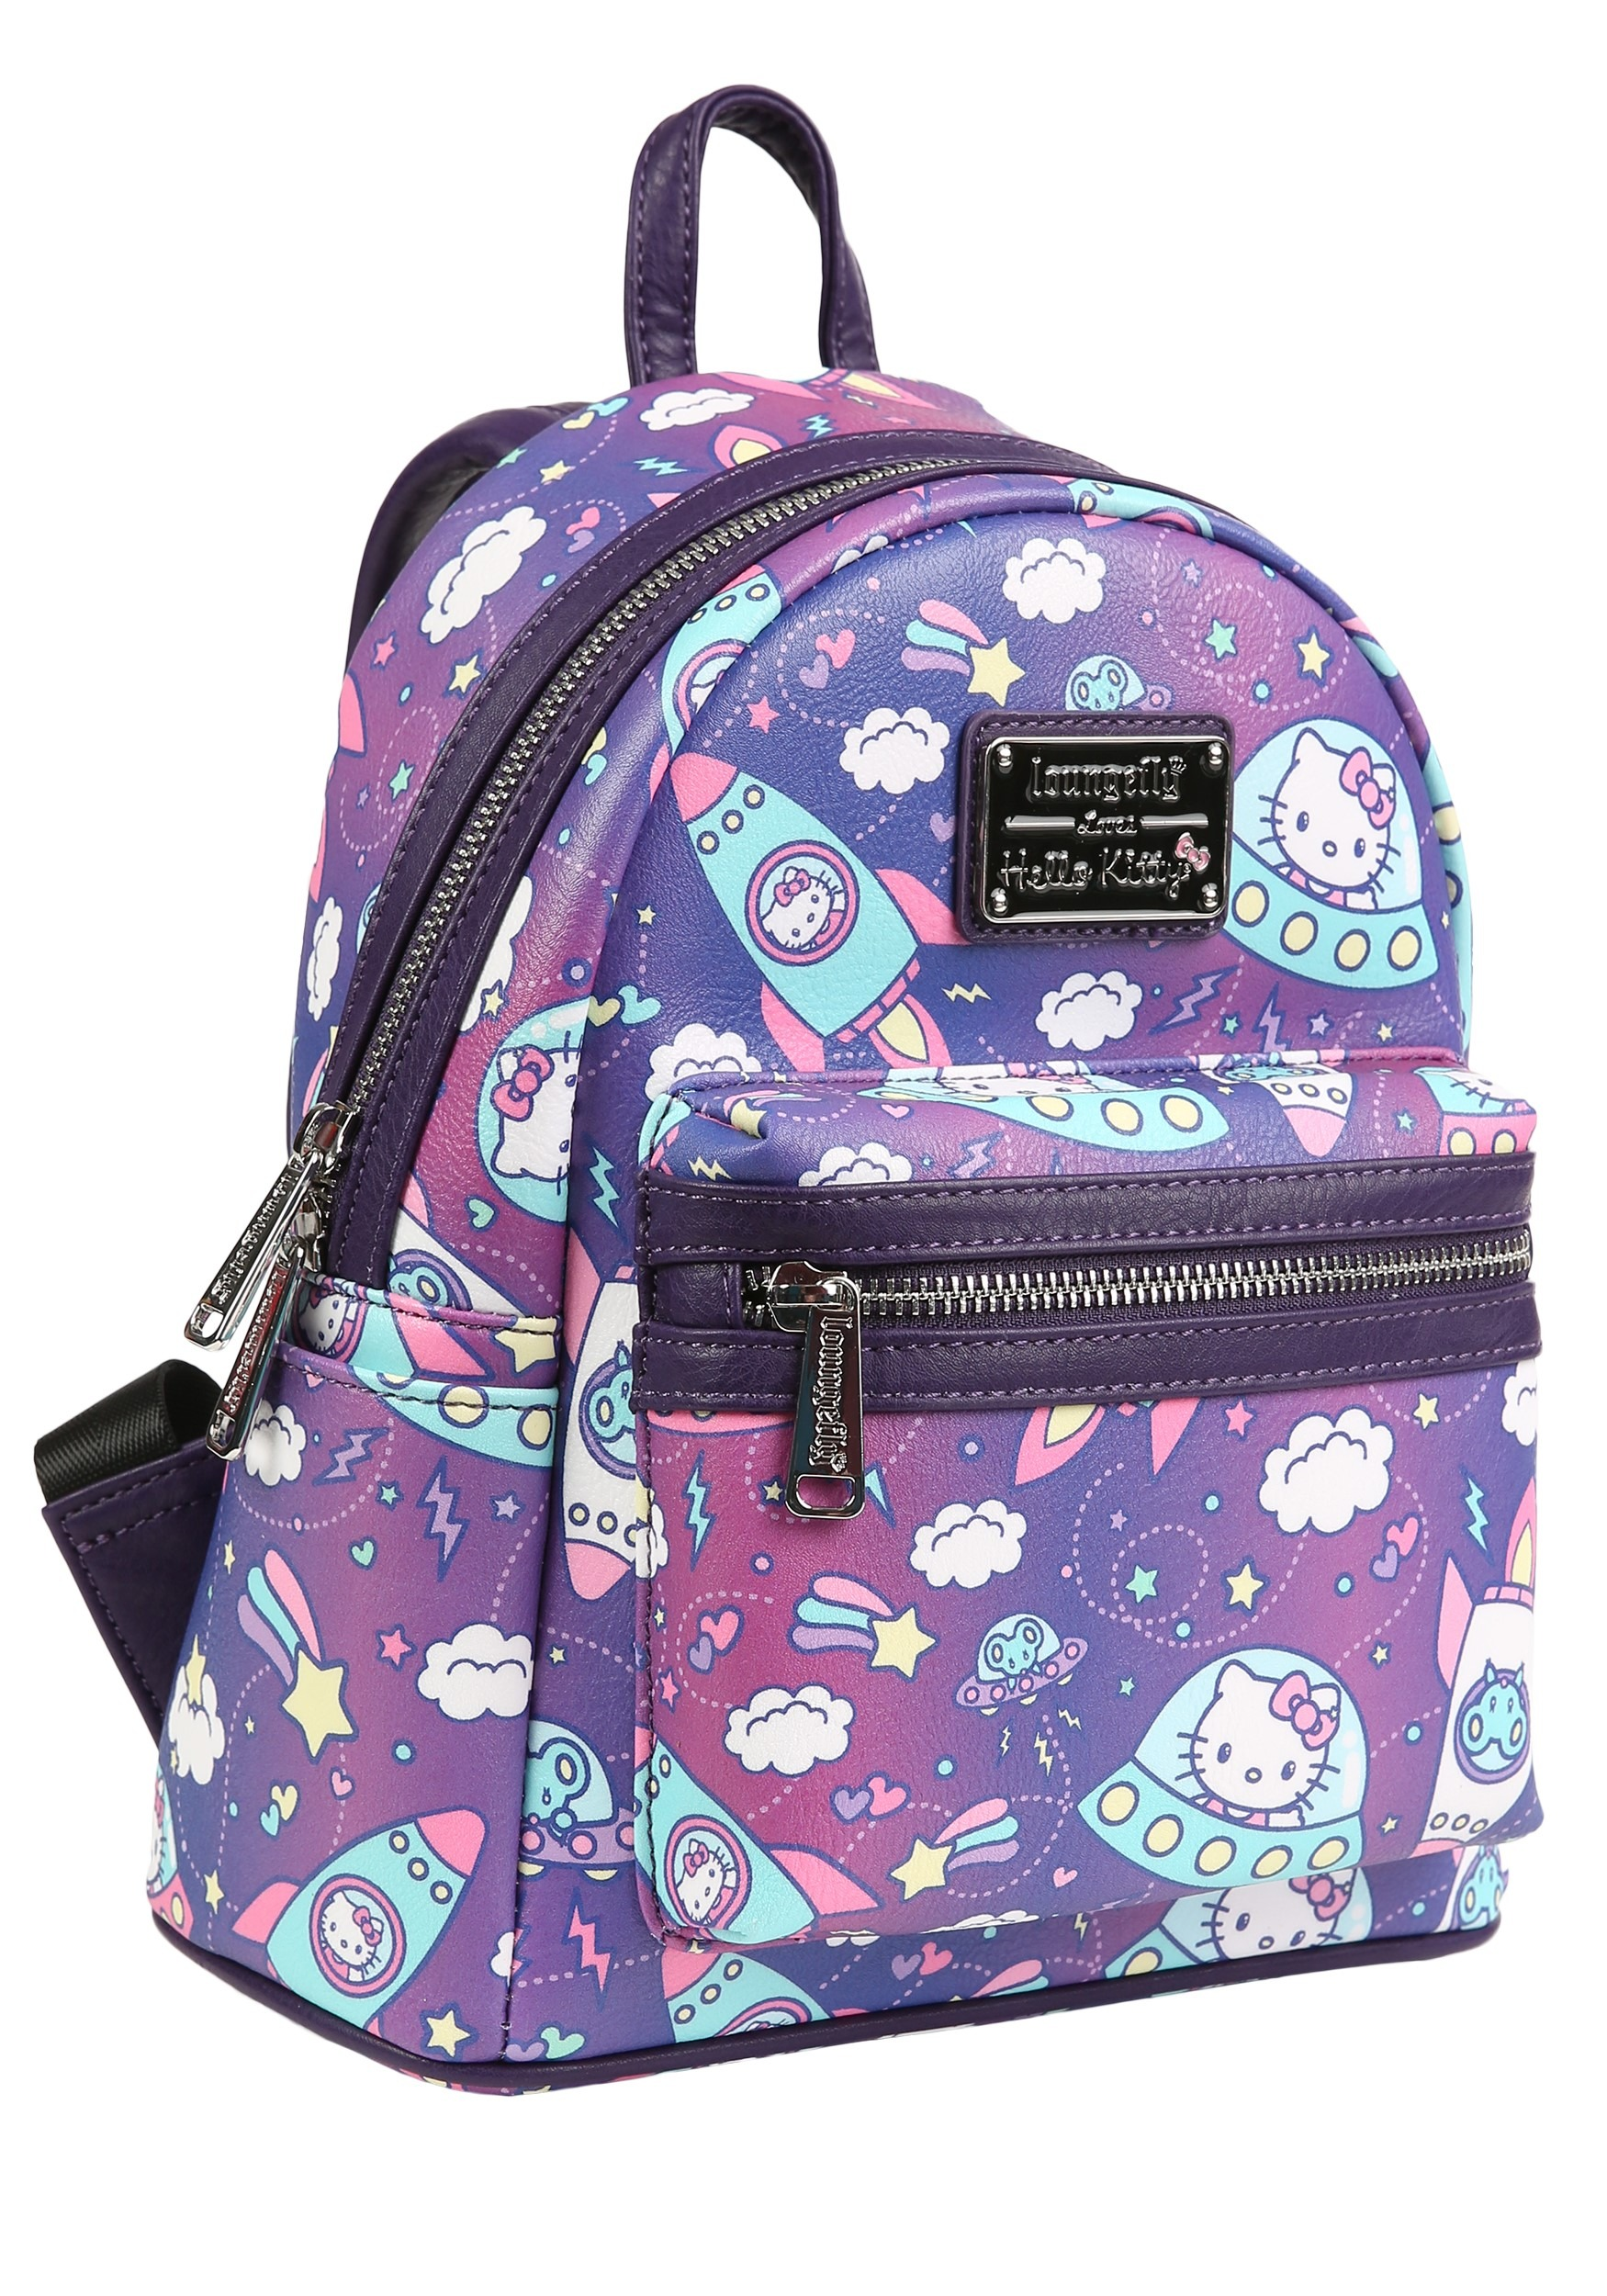 4ddab0c4d2df Loungefly Faux Leather Hello Kitty Spaceships Print Mini Backpack